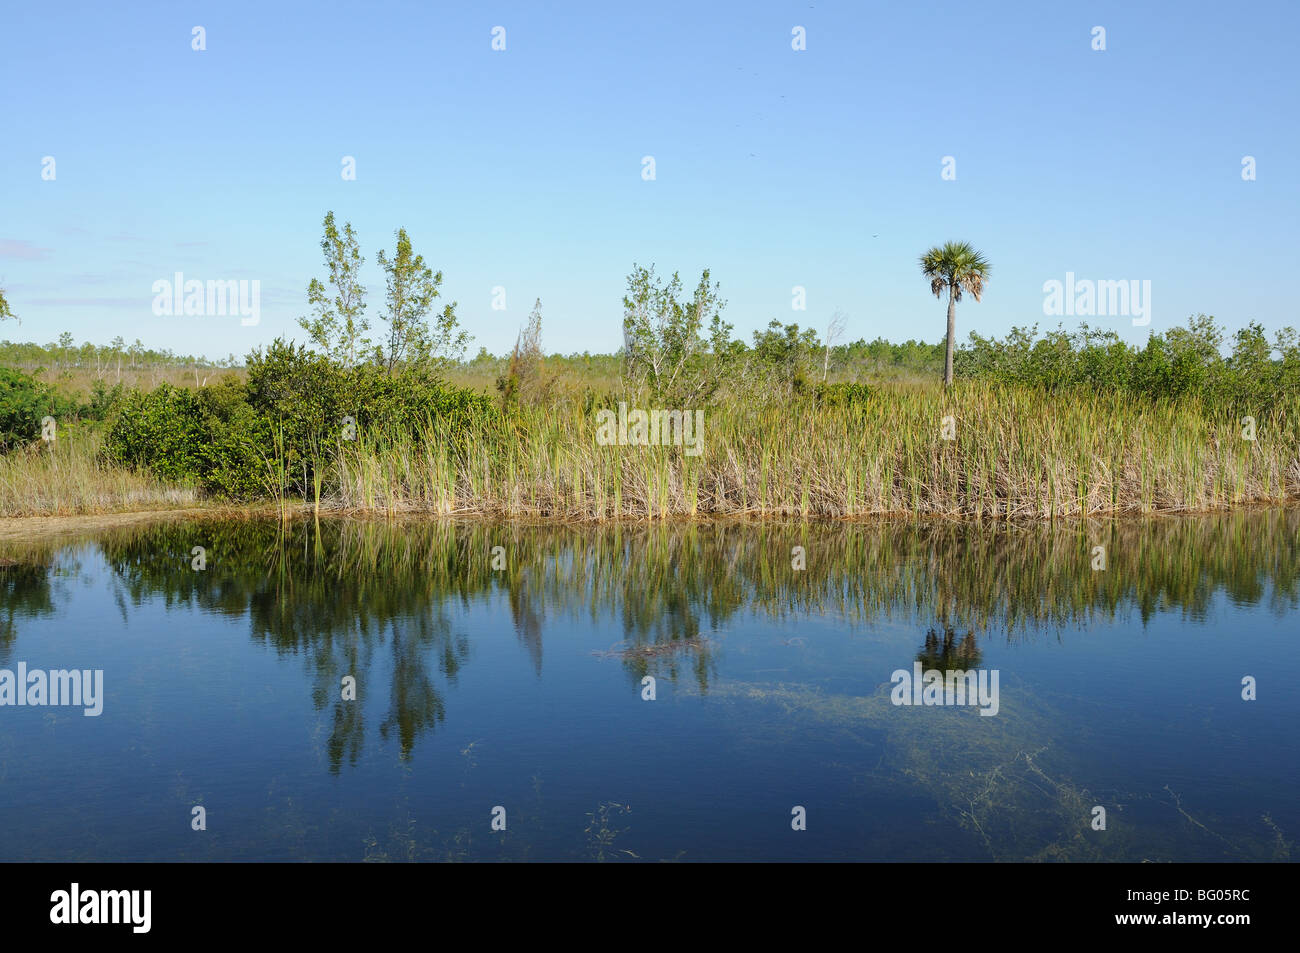 Landscape in the Everglades National Park, Florida USA - Stock Image